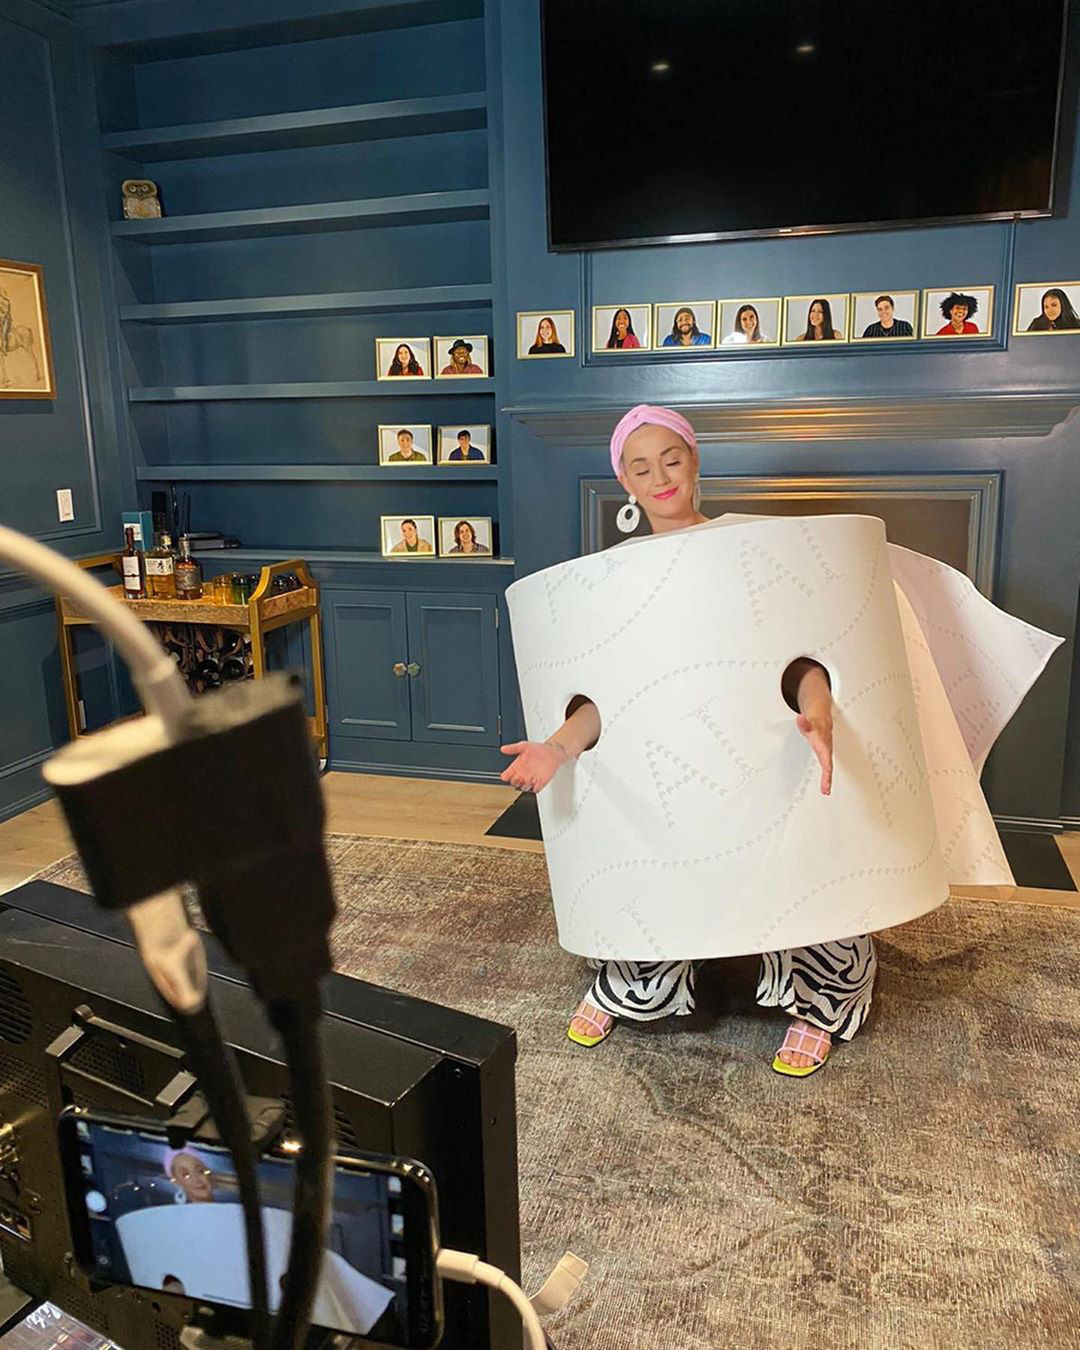 Katy Perry Doubles Down on Crazy Costumes, Wears Toilet Paper Roll on American Idol